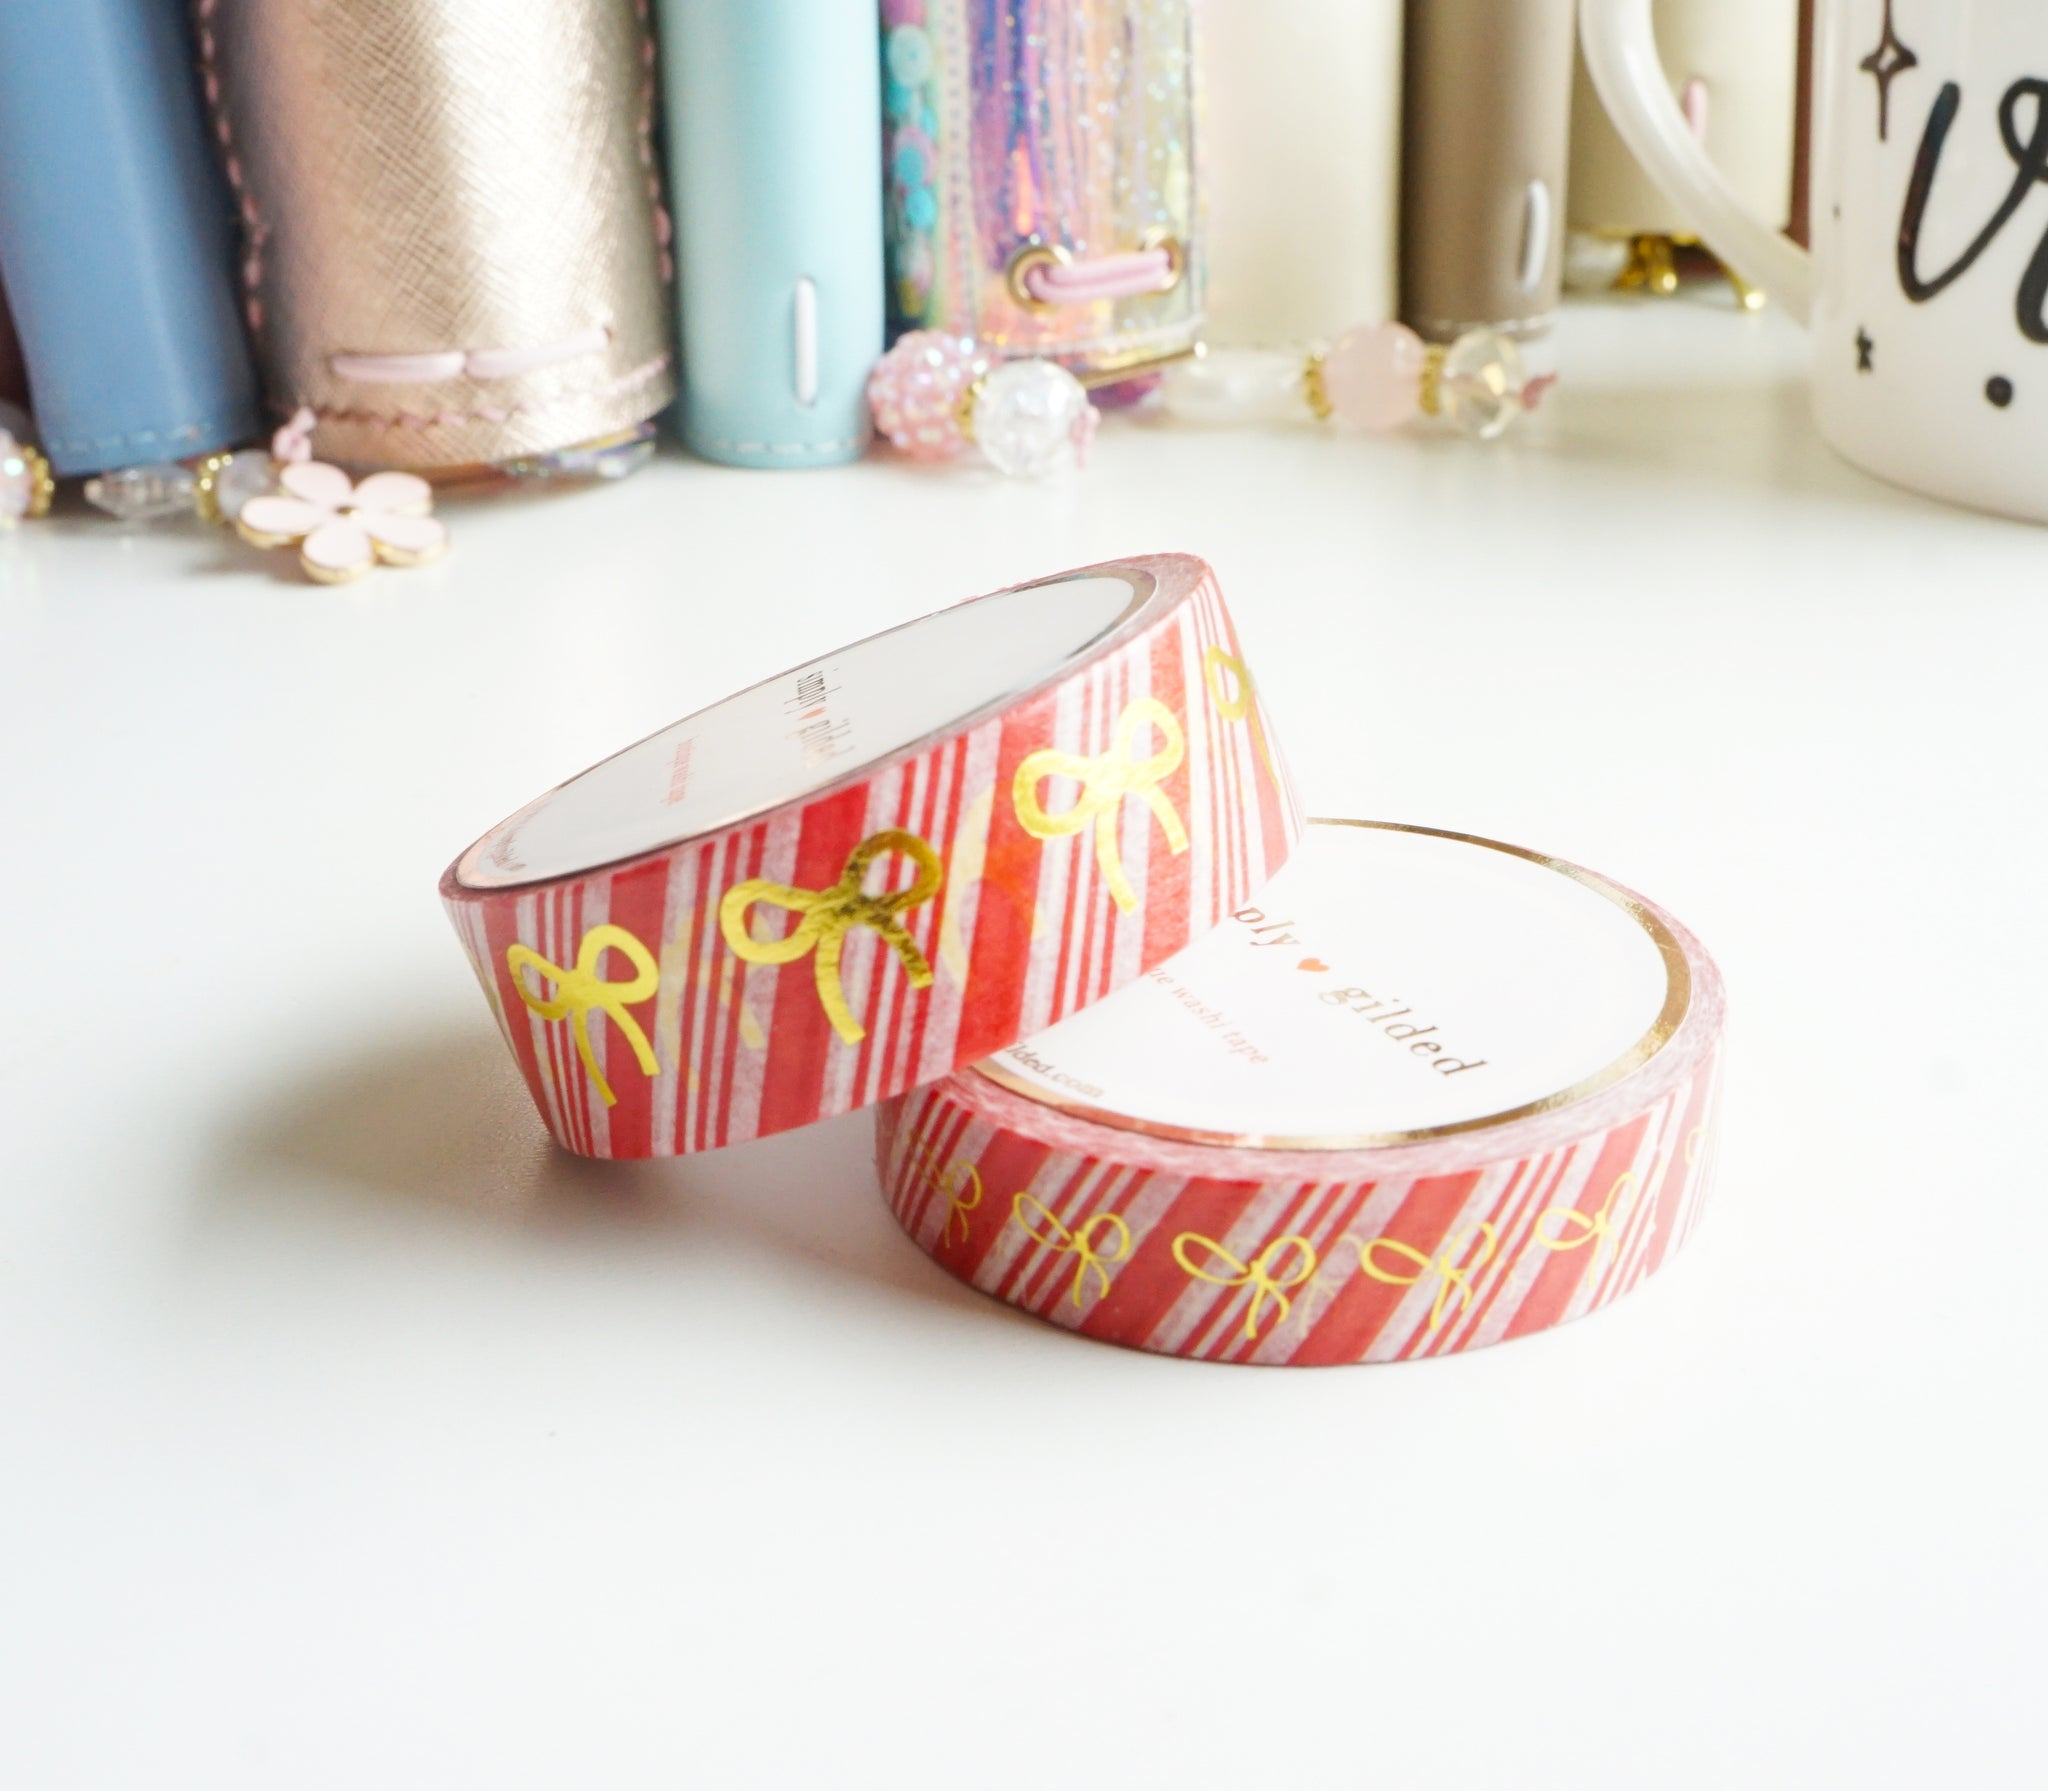 WASHI TAPE 15/10mm - CANDY CANE Bow and GOLD foil (Mystery Monday)